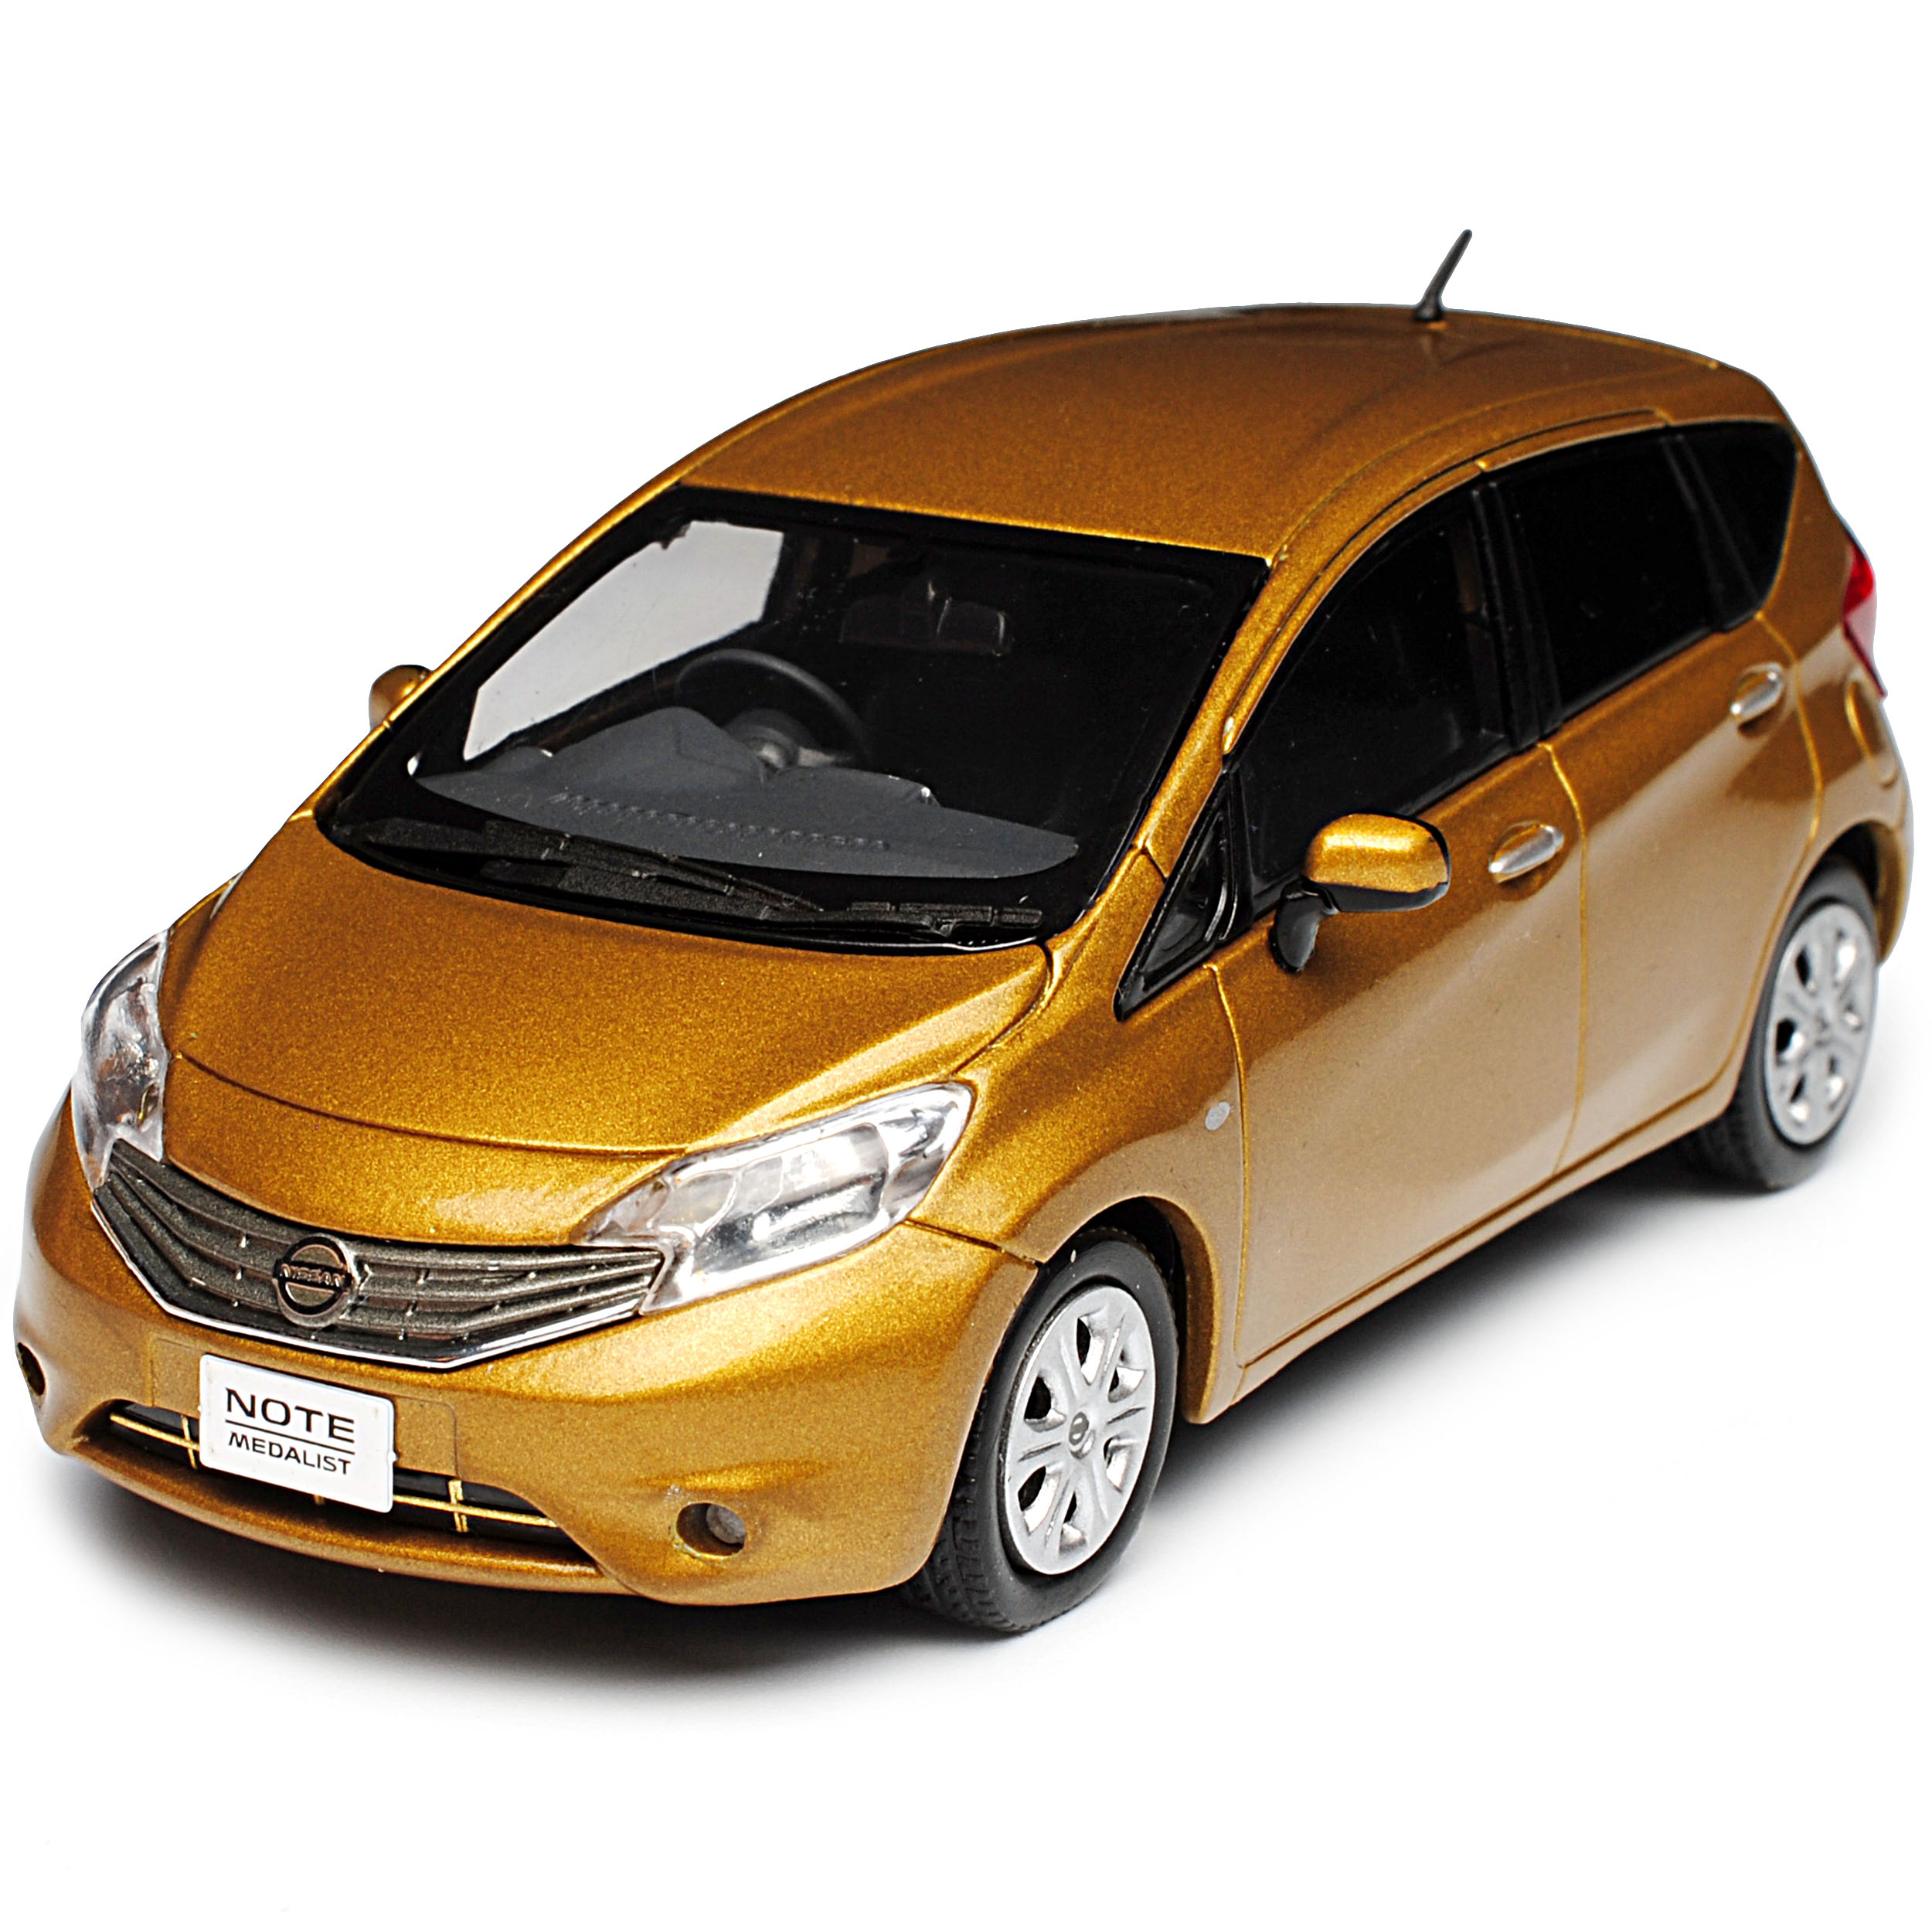 Nissan Note E12 Gold 2. Generation 2012-2016 1 43 43 43 Kyosho J-Collection Modell A.. d4ffb9